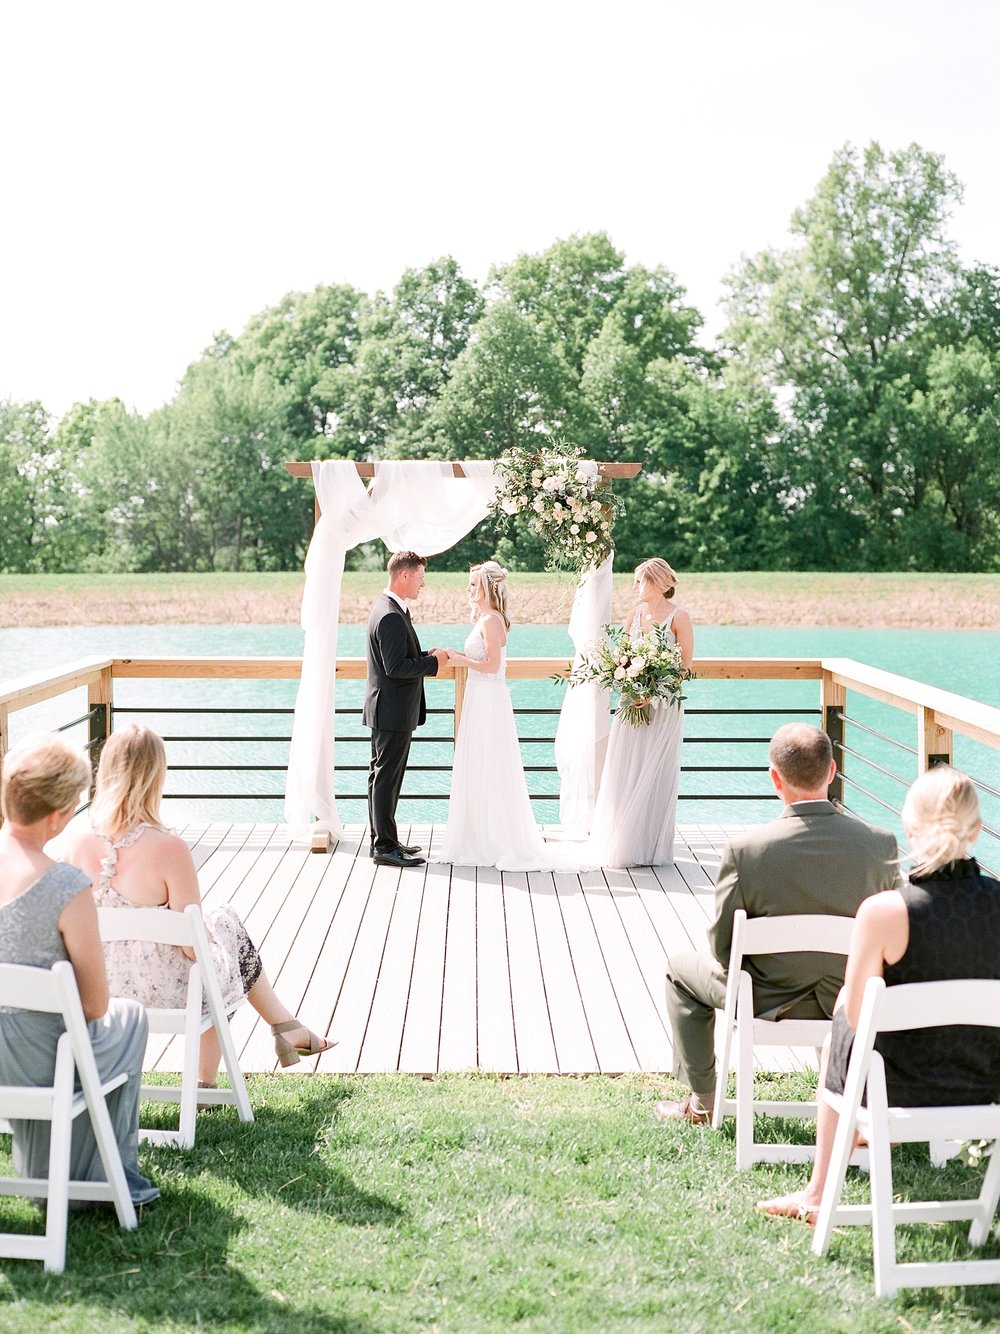 Textural Organic Wedding in All White Venue by Kelsi Kliethermes Wedding Photographer - Missouri, Midwest, and Destinations_0069.jpg